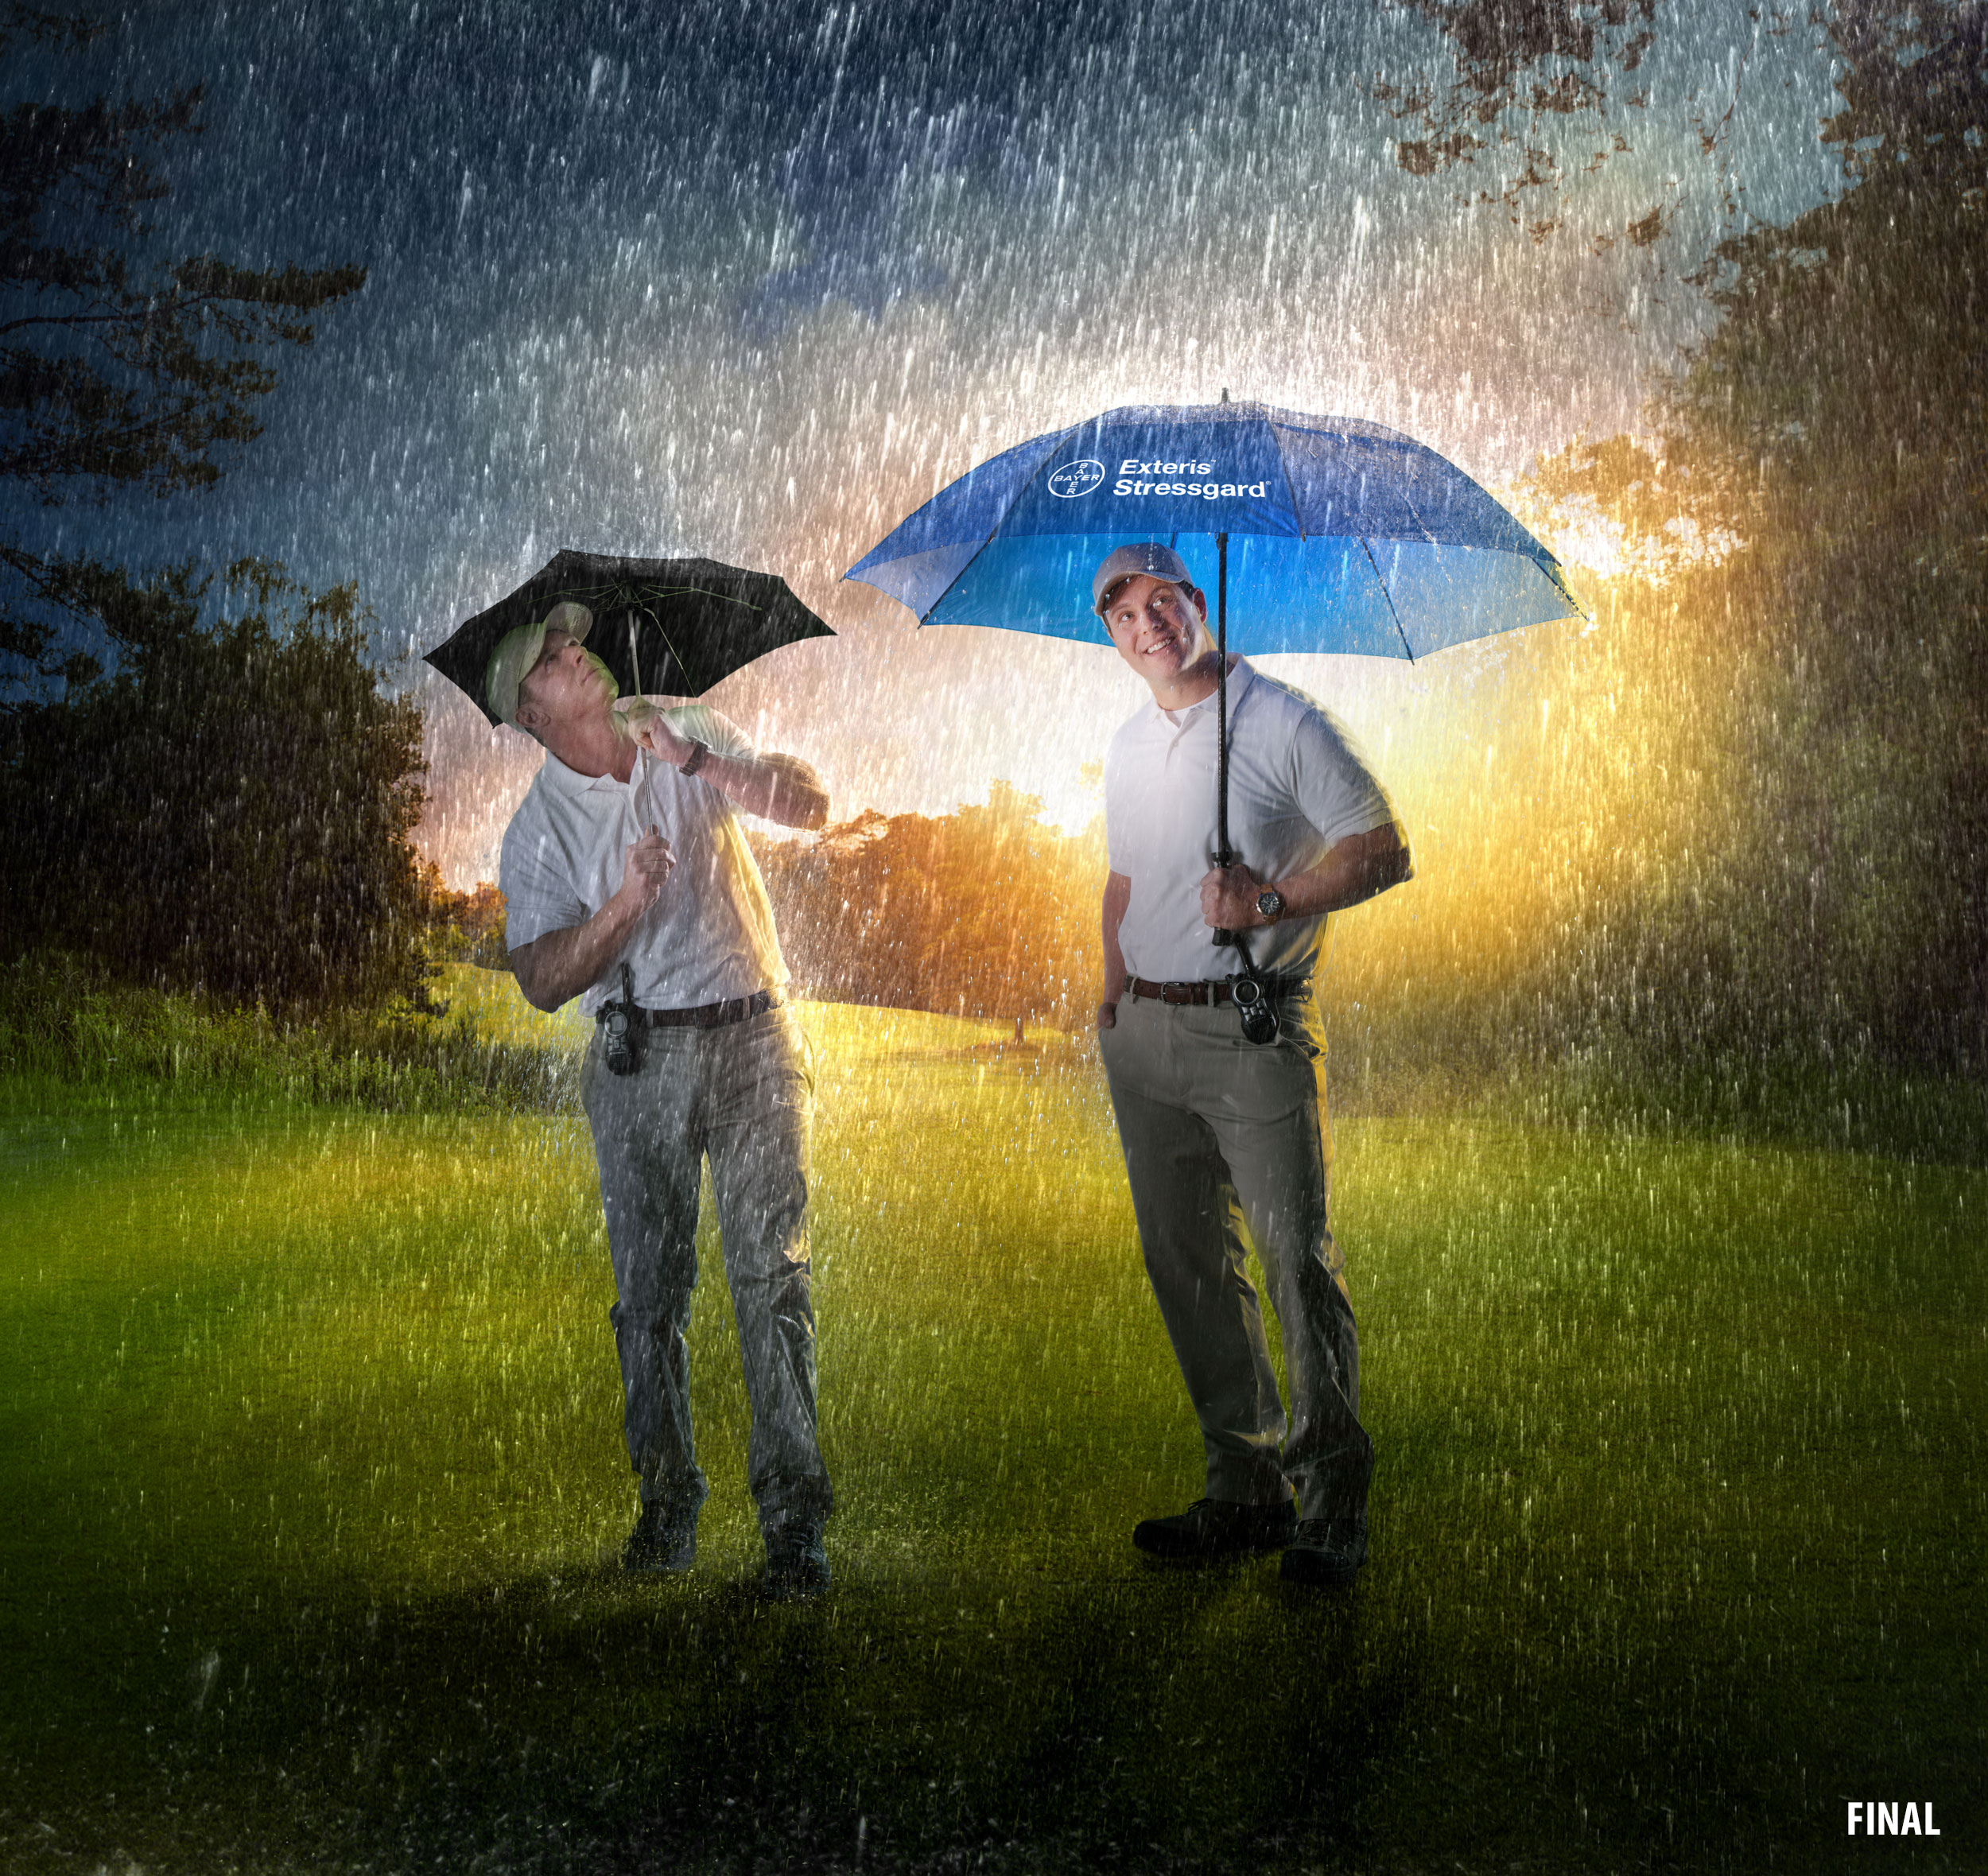 Composite Imagery photo of two men on golf course raining